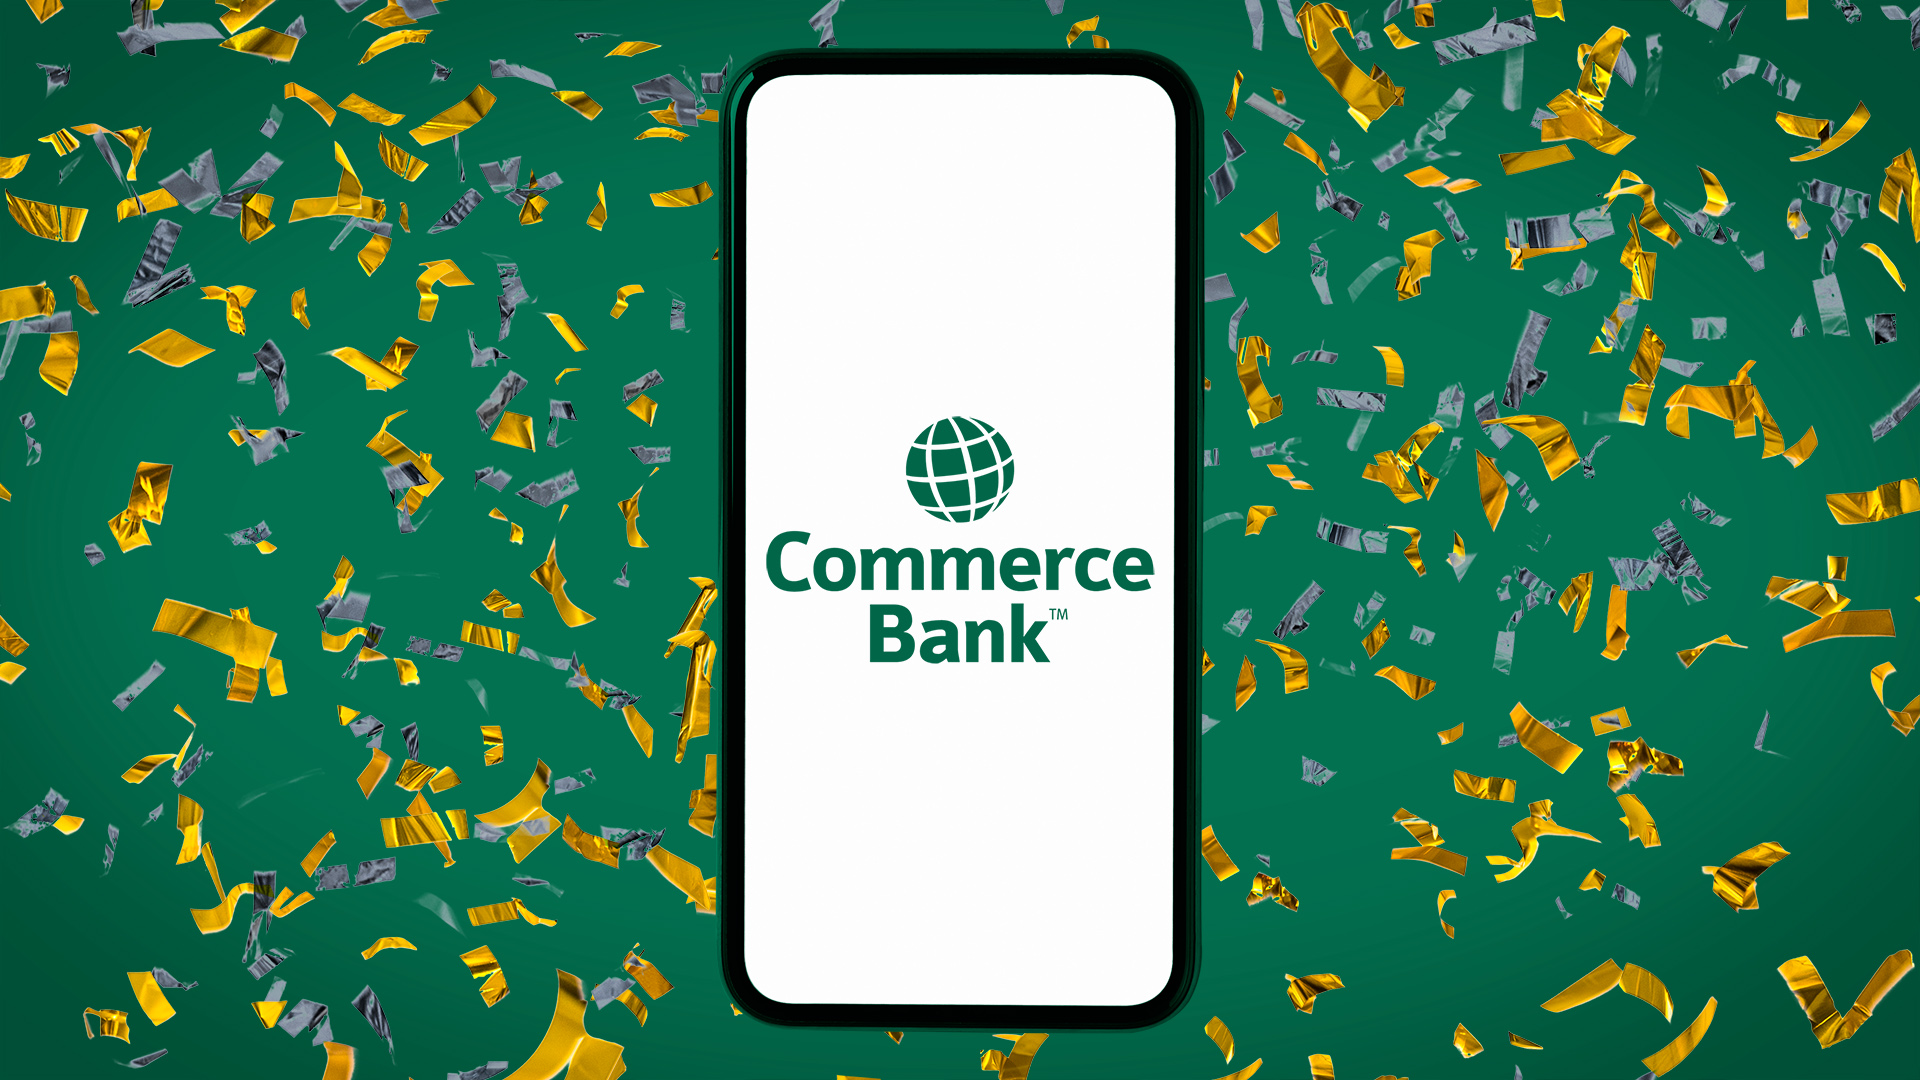 Commerce Bank promotions